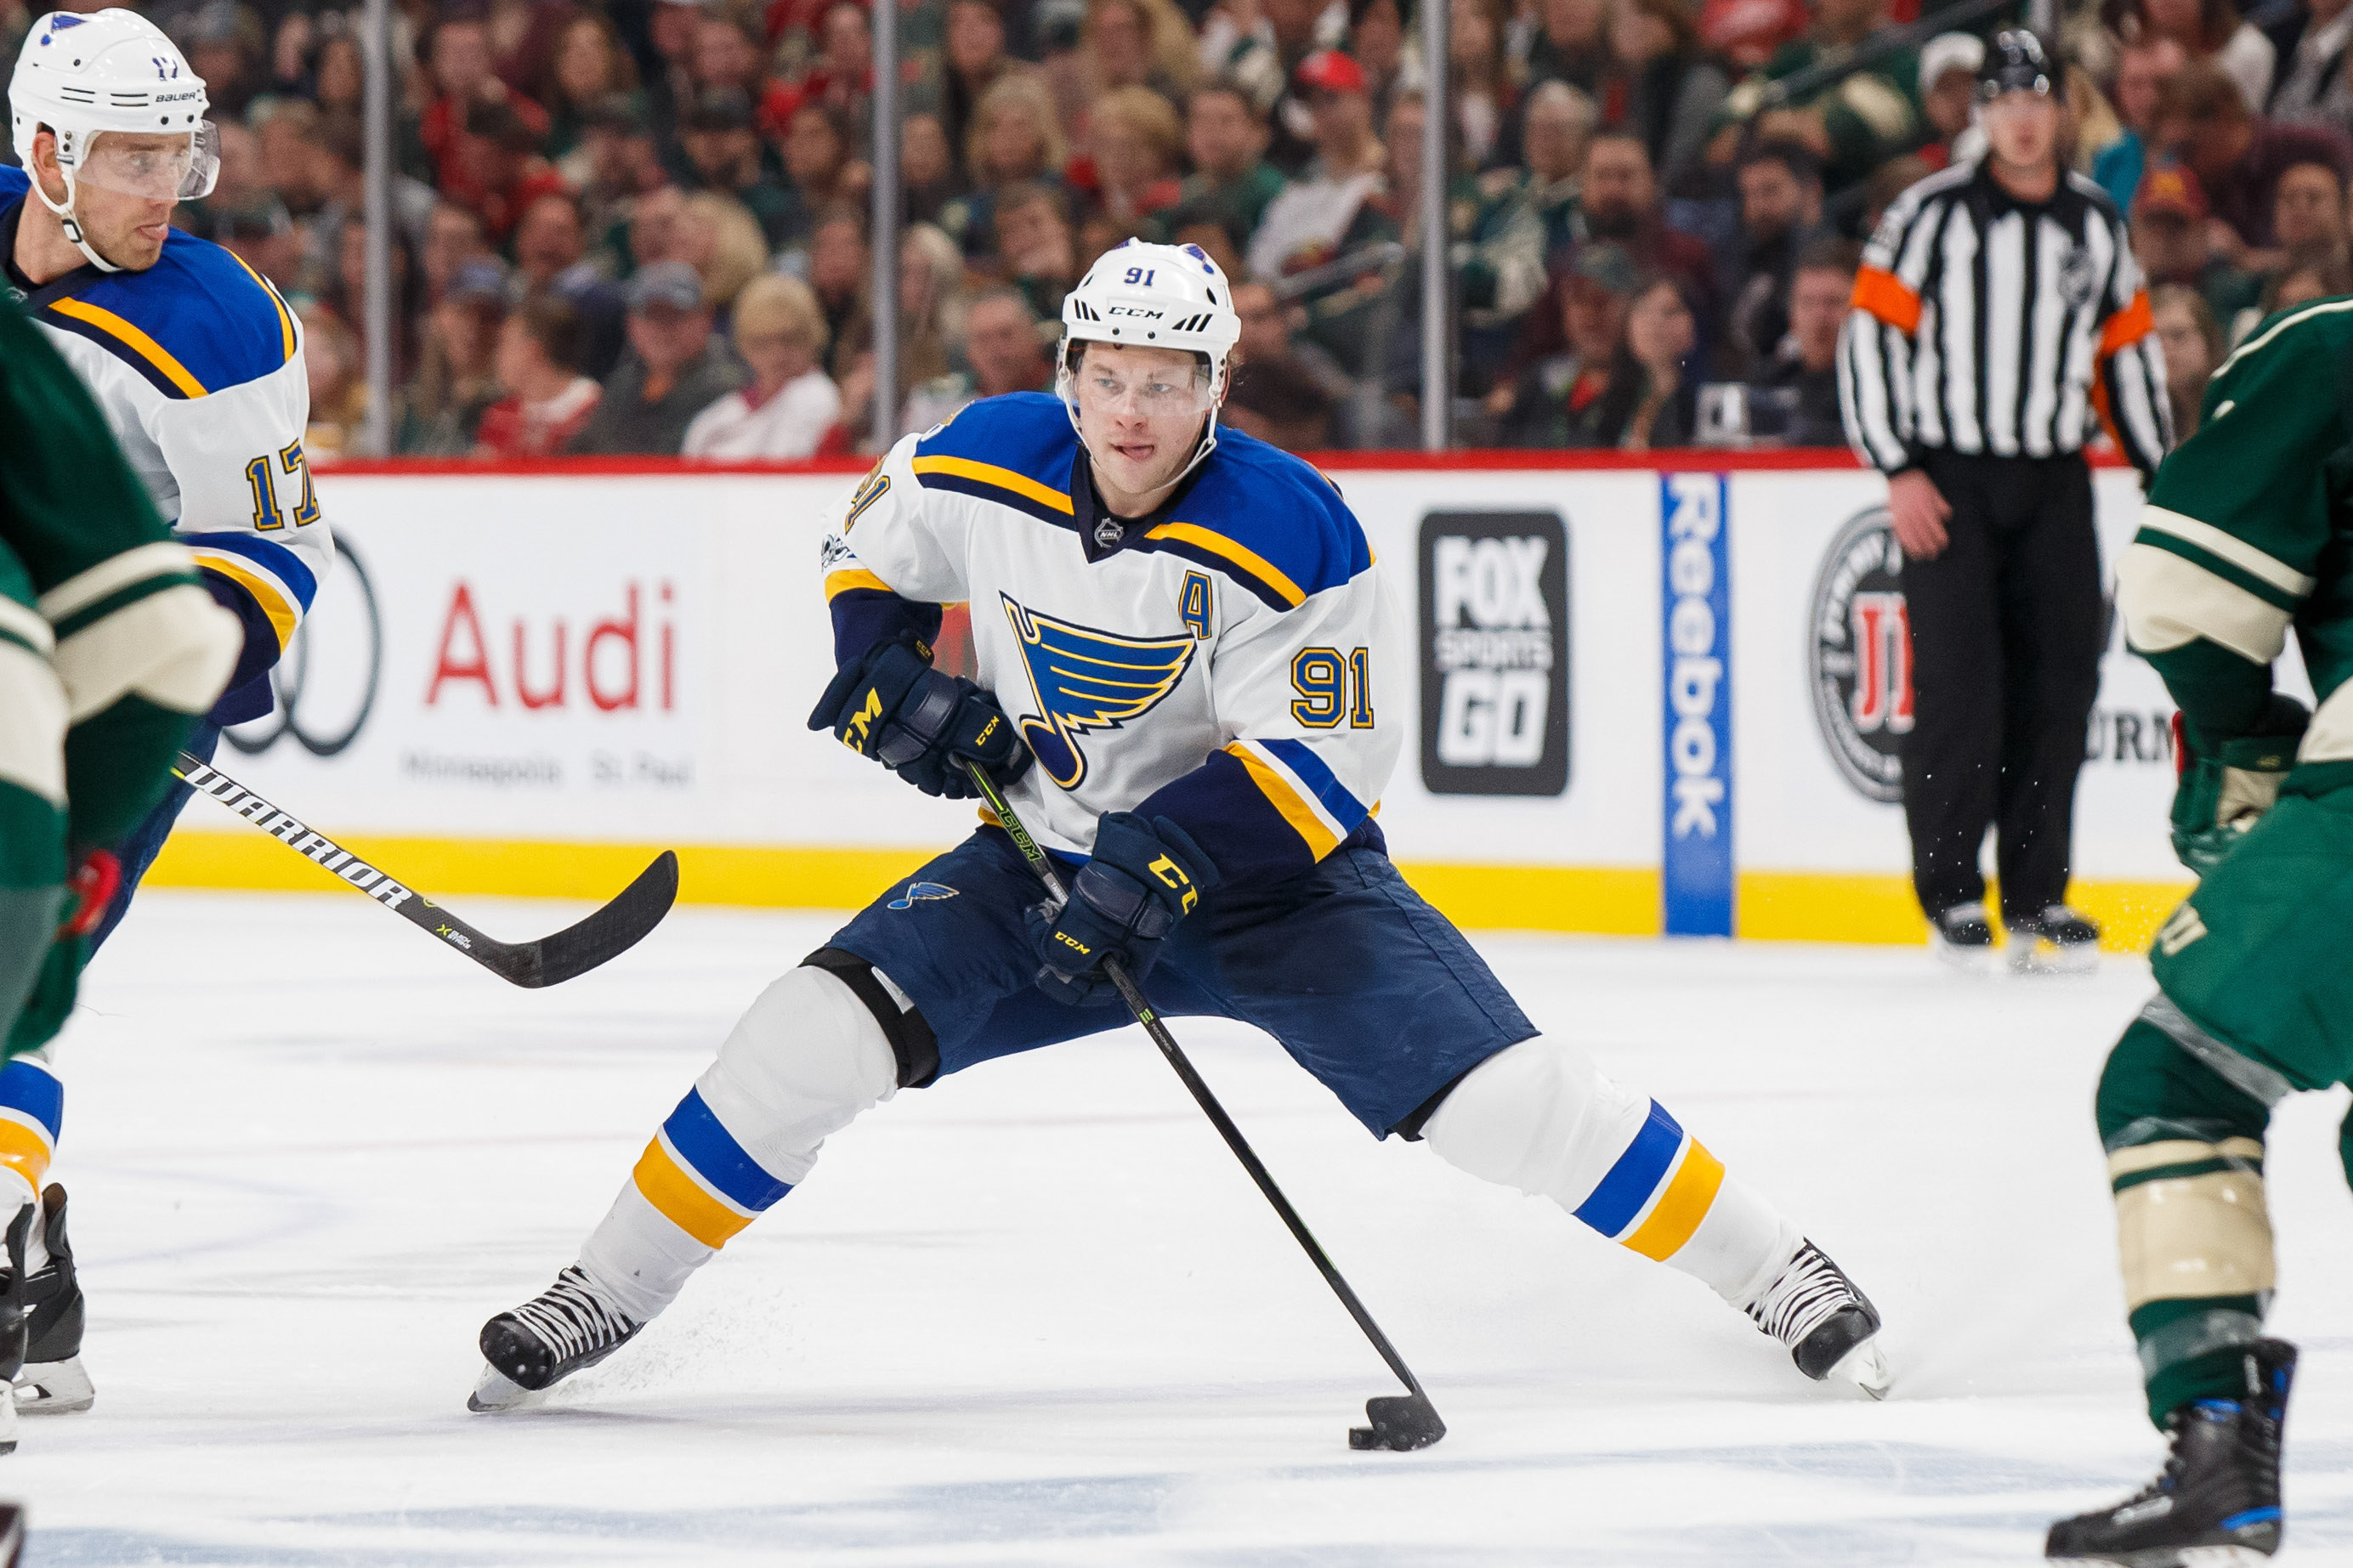 10018481-nhl-stanley-cup-playoffs-st.-louis-blues-at-minnesota-wild